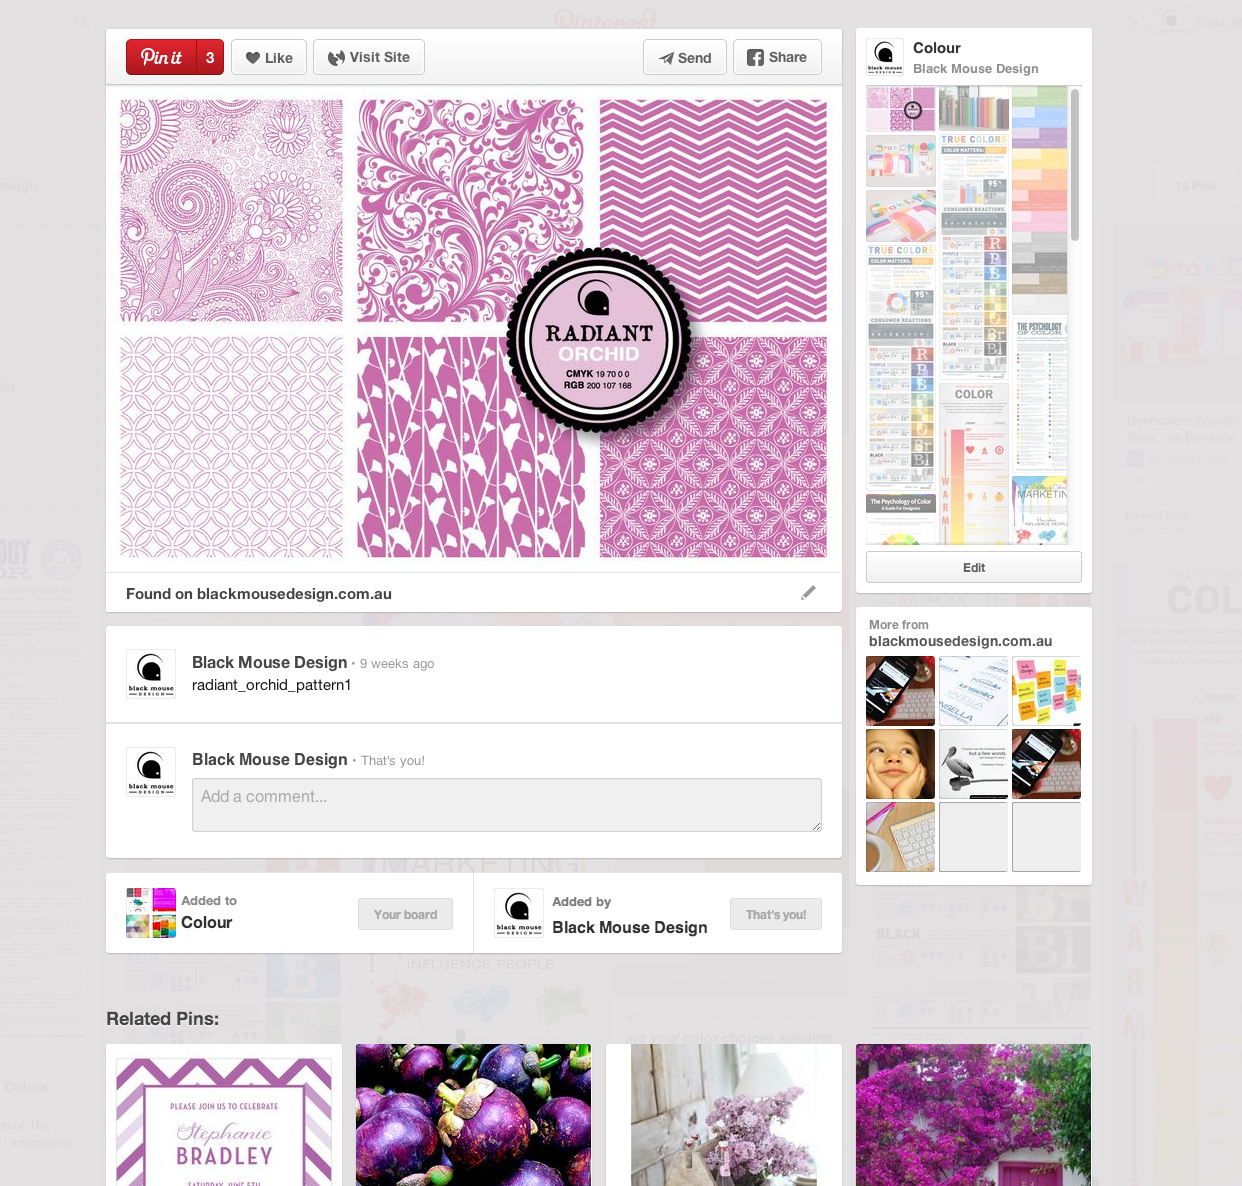 how to find group boards on pinterest